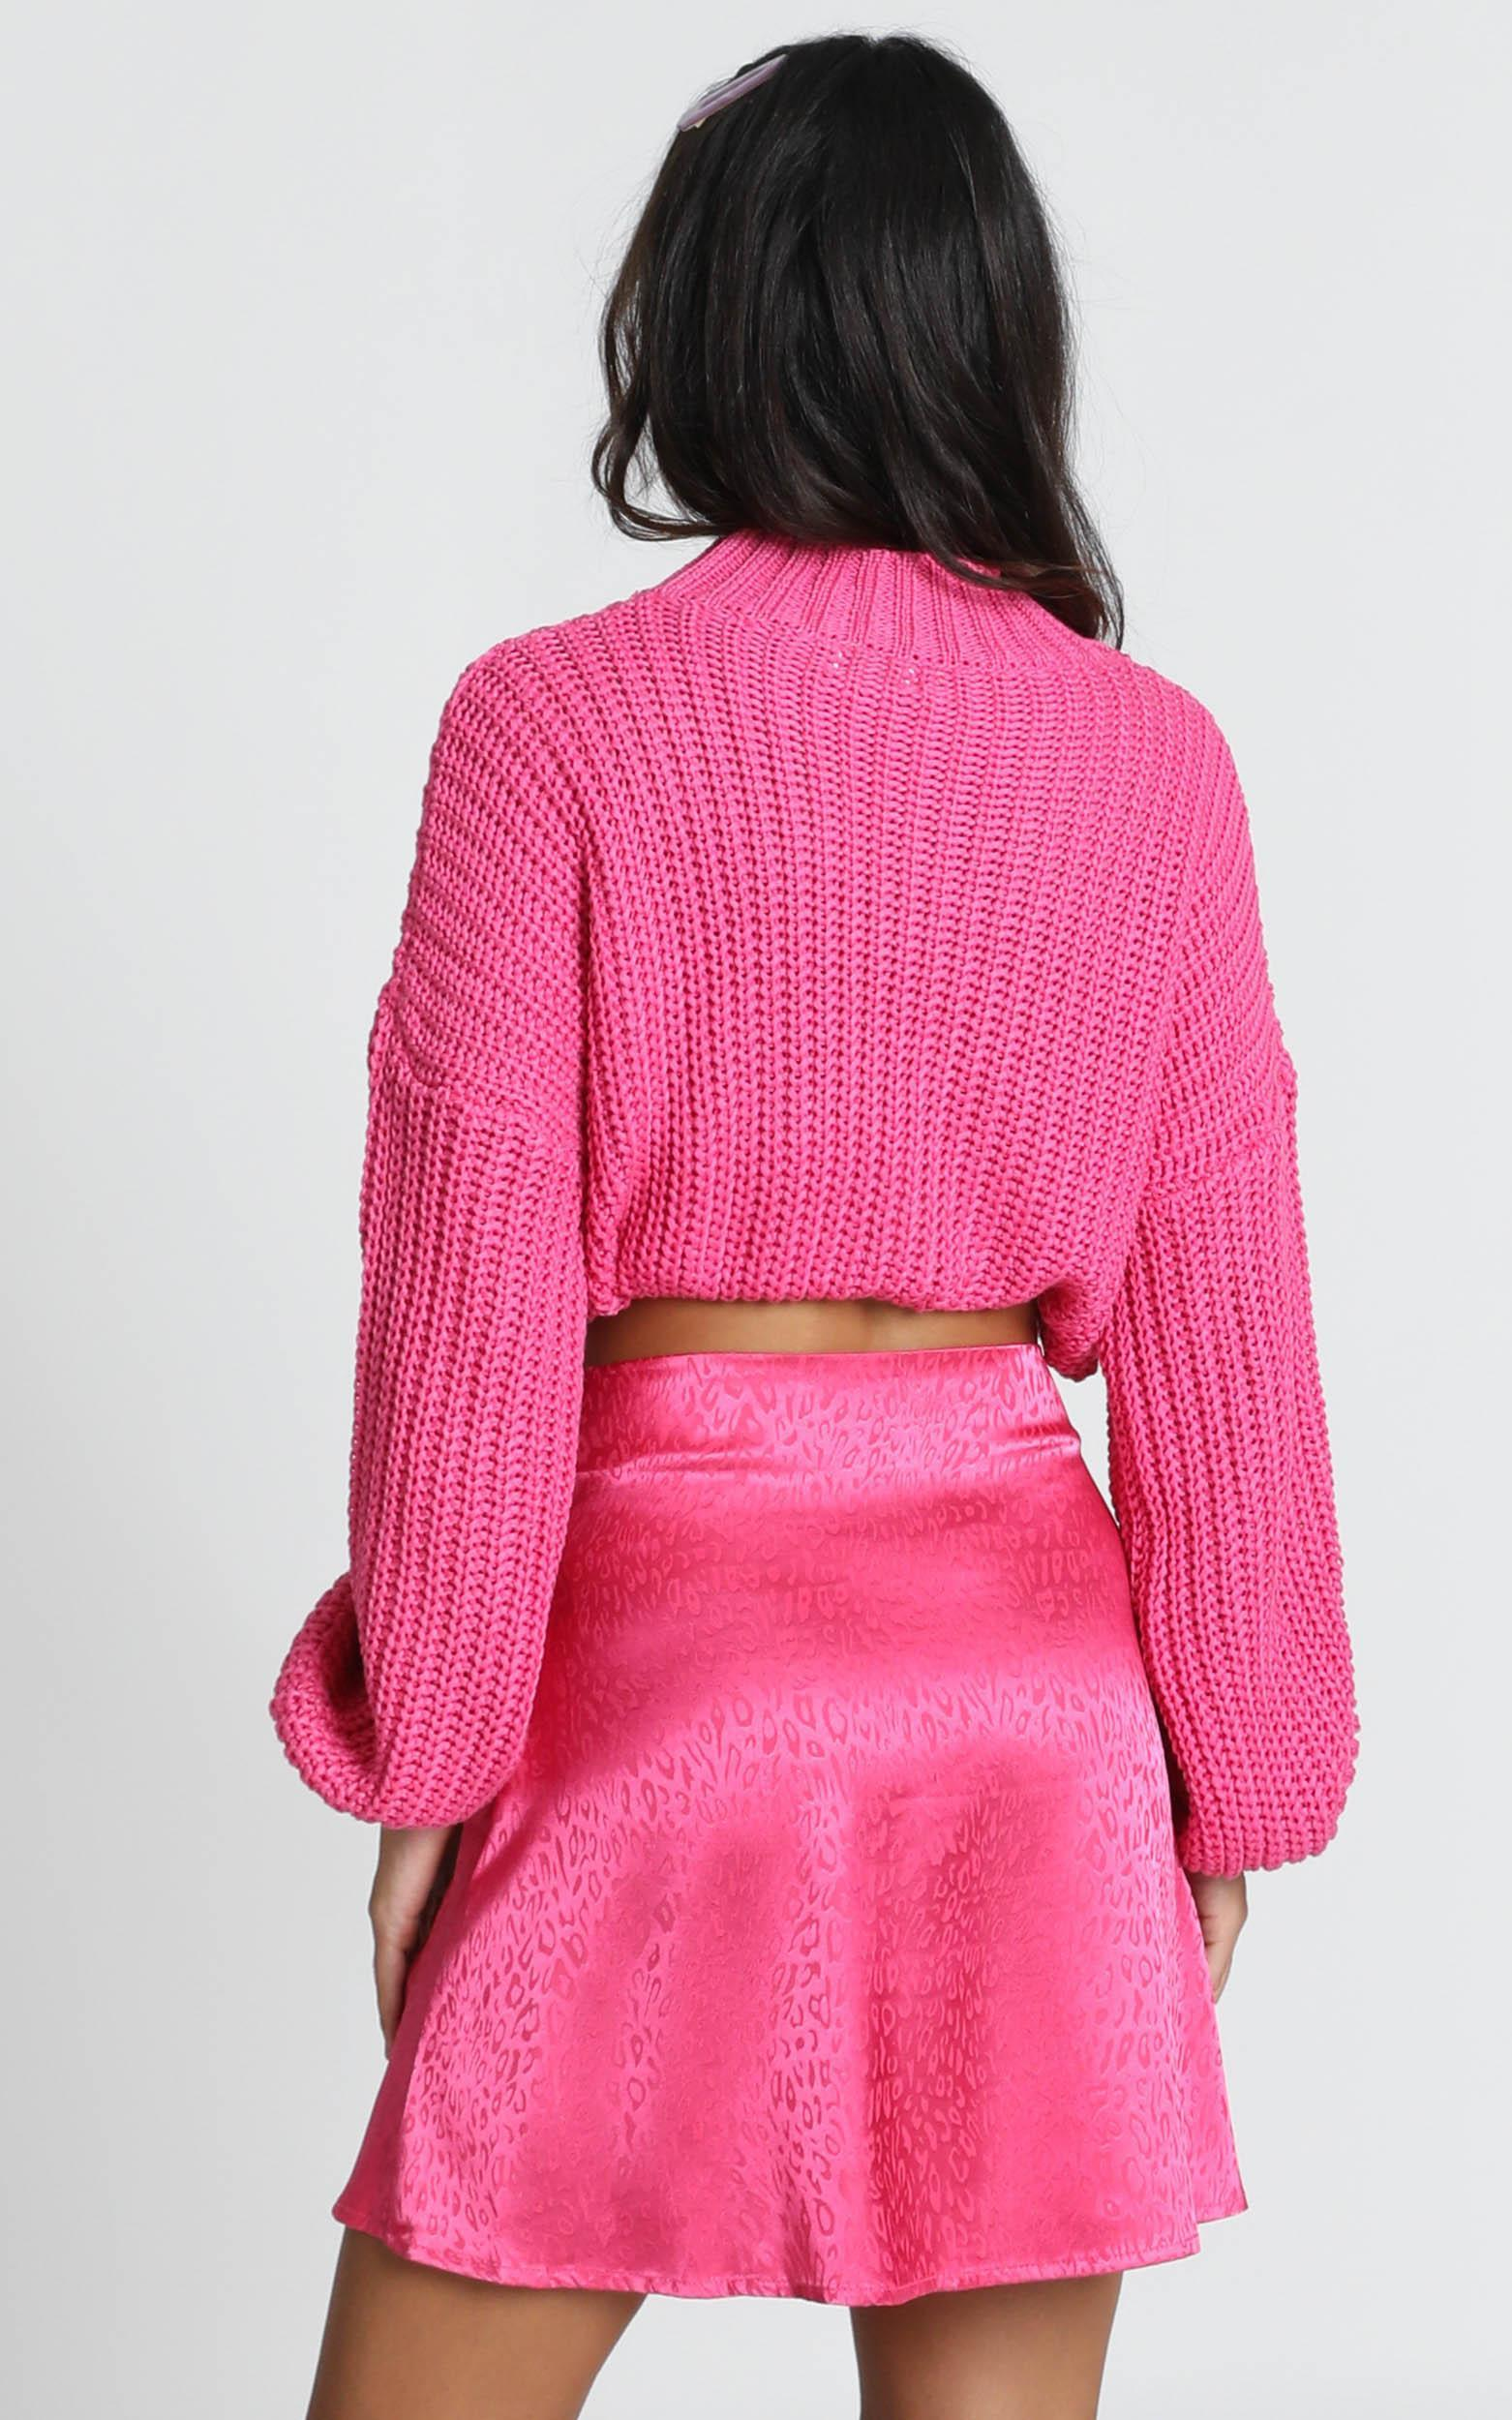 Party's Over Mini Skirt in pink leopard - 12 (L), Pink, hi-res image number null